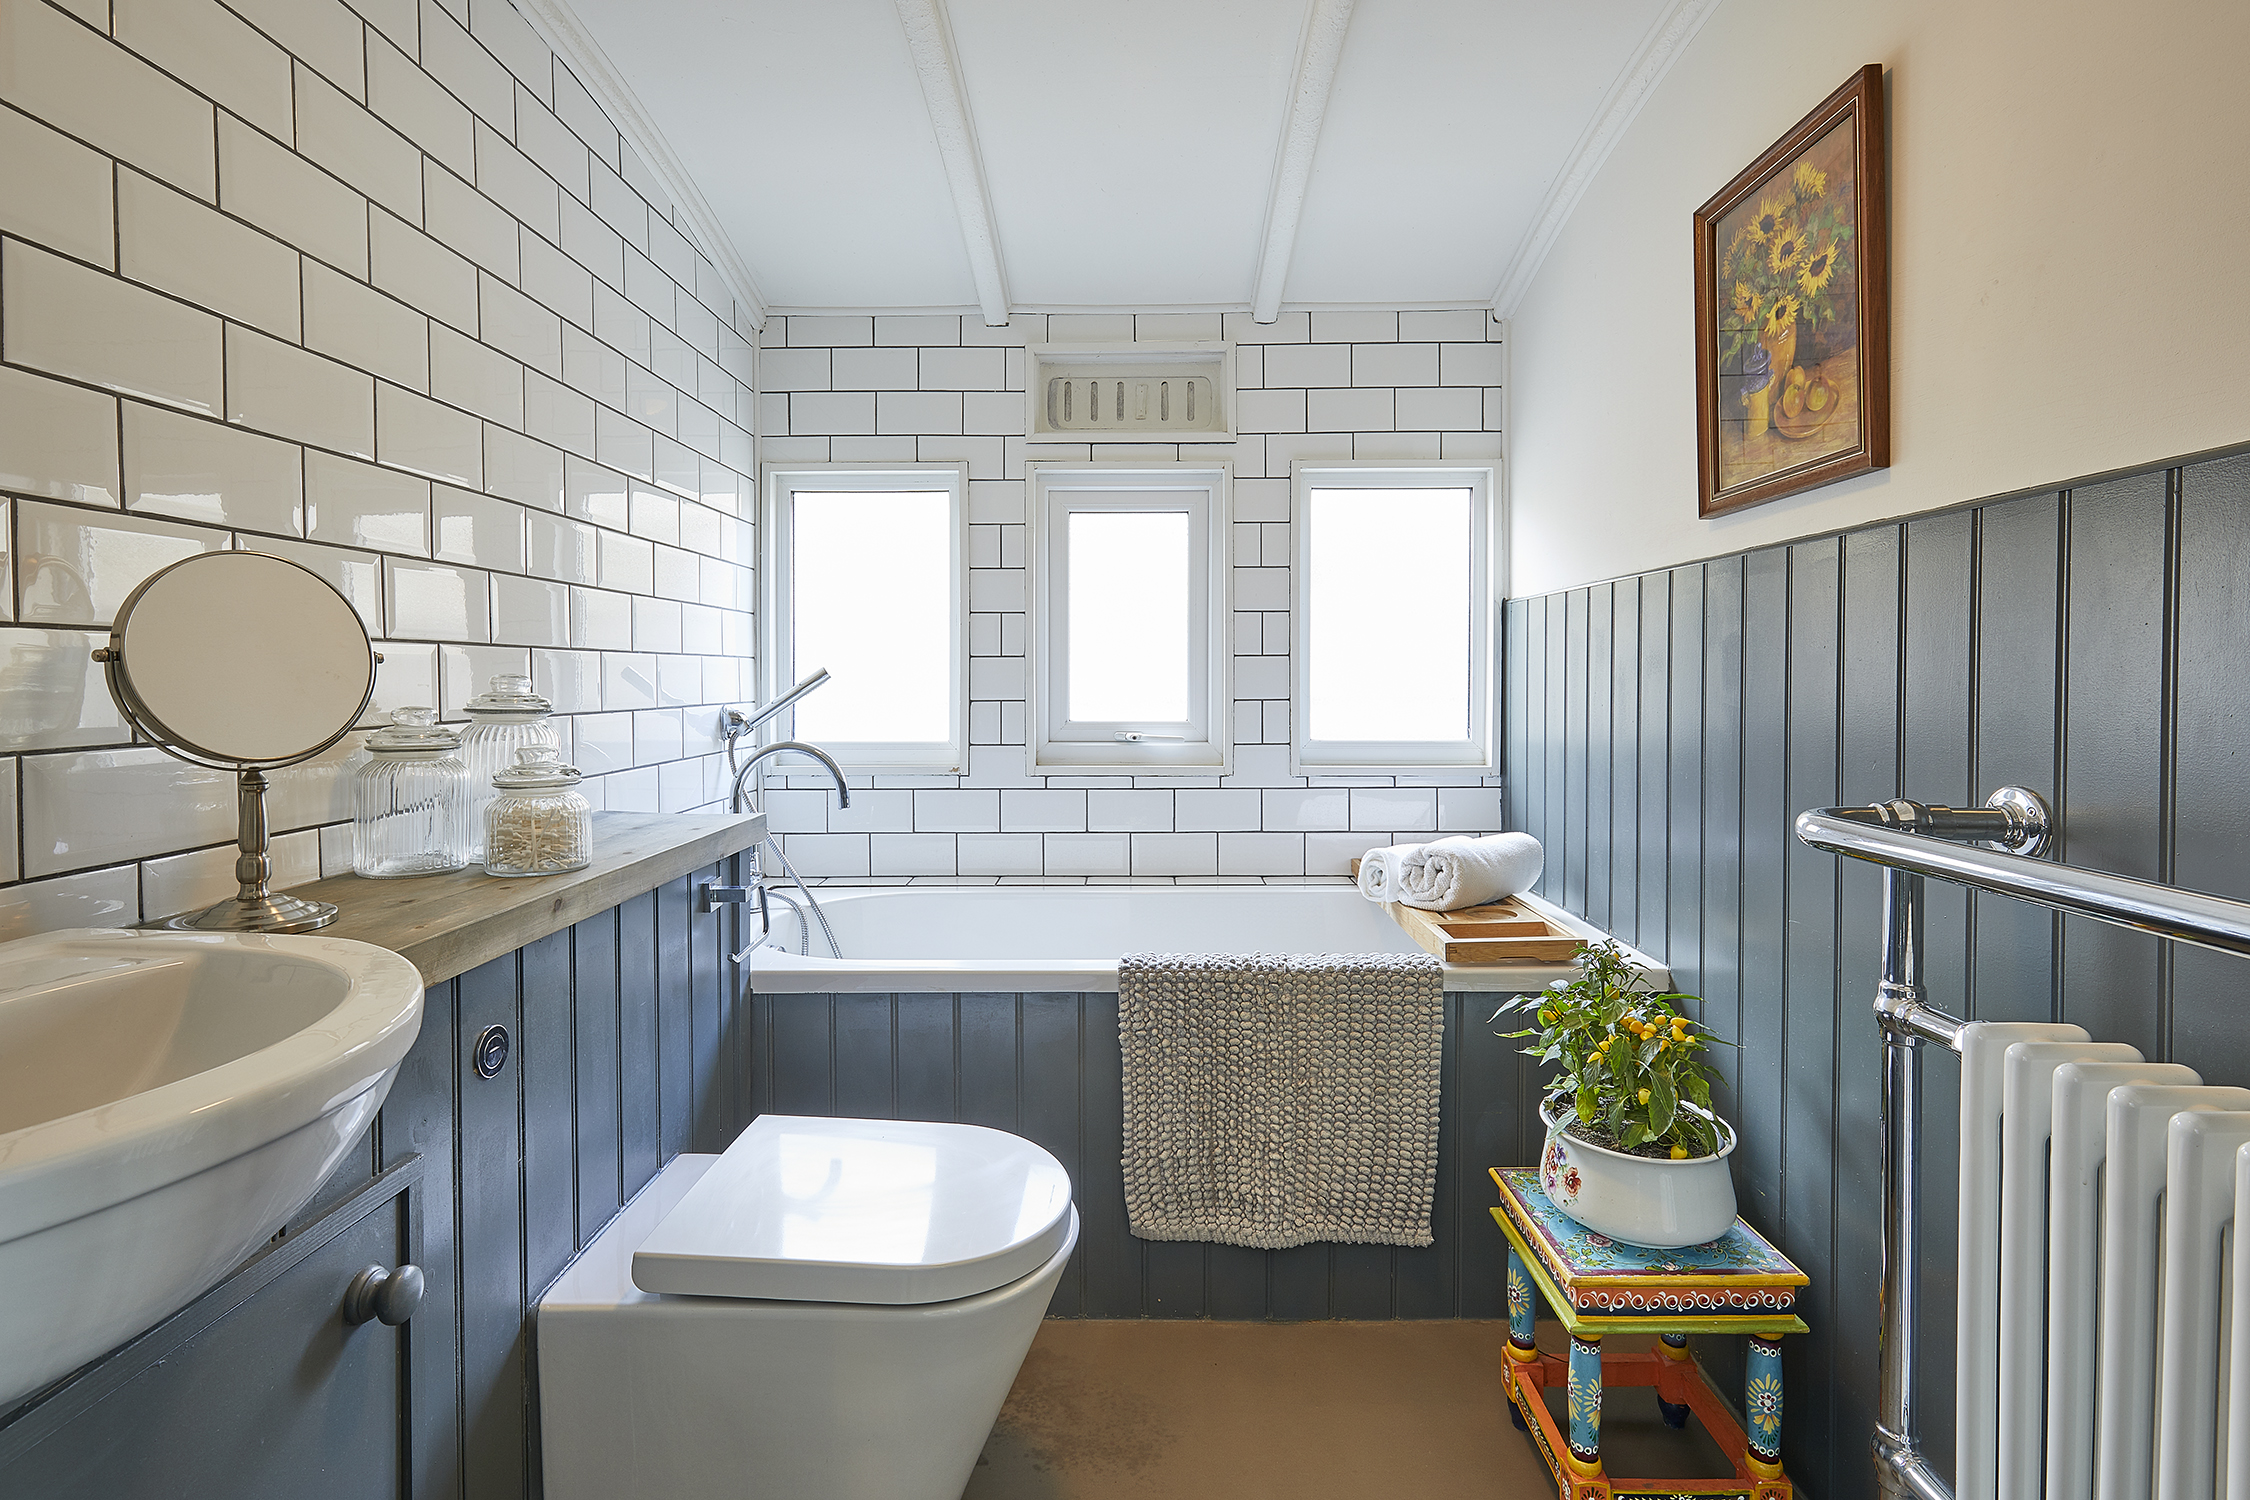 The Bolthole on Pagham Beach - Family bathroom in original Victorian railway carriage